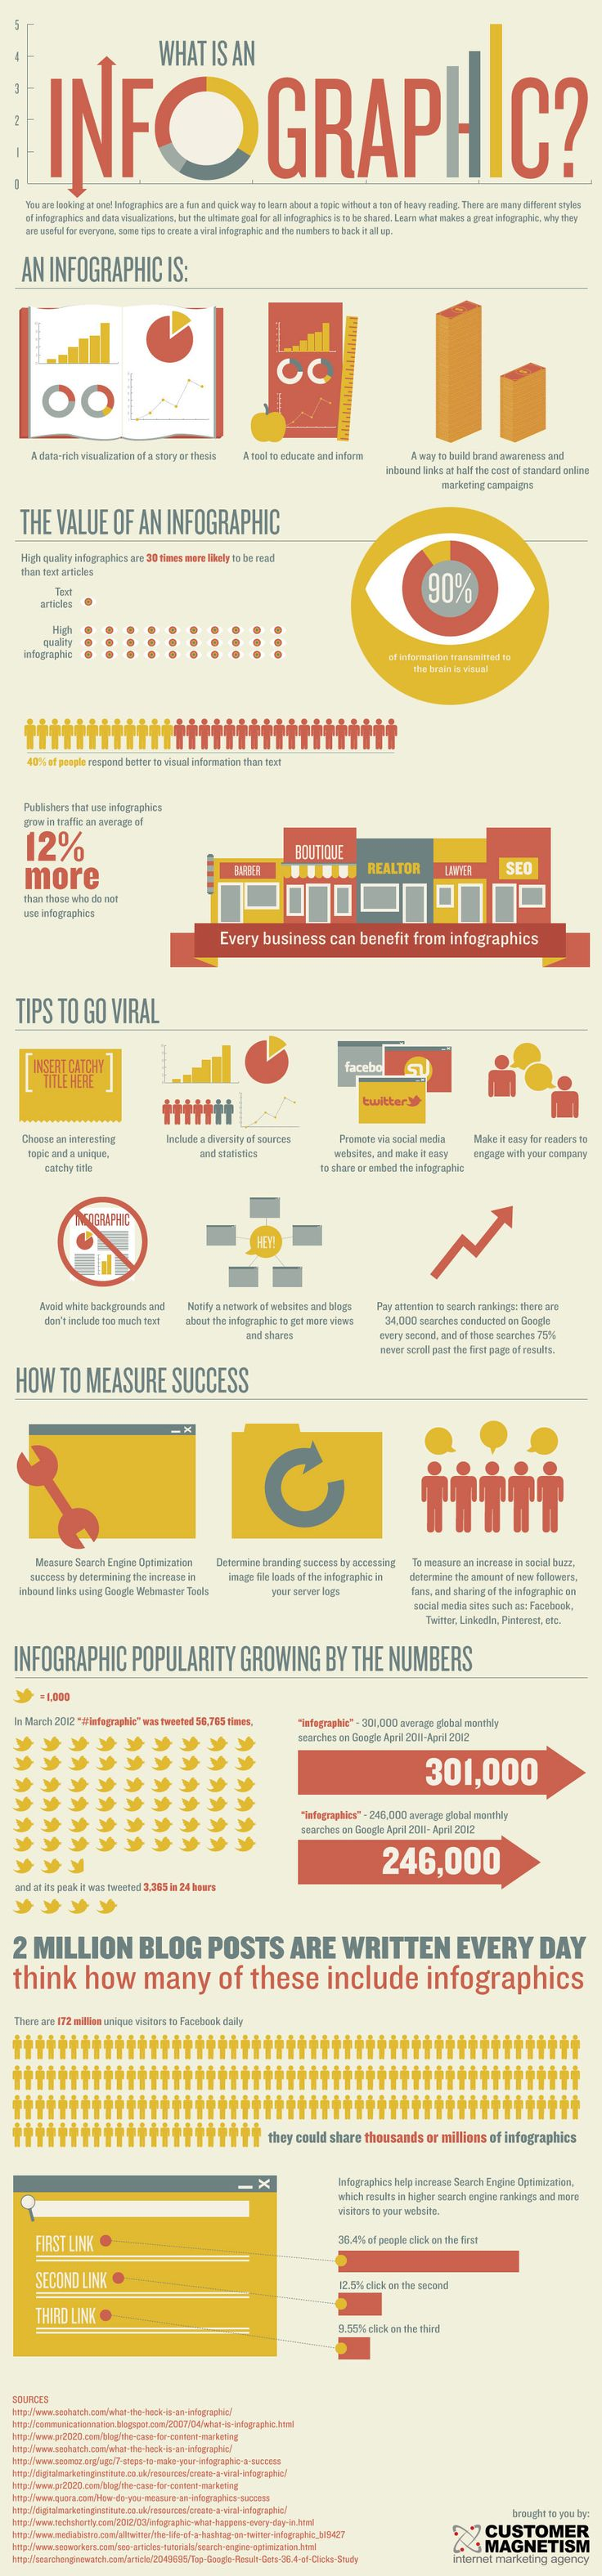 What is an Infographic? #infographic